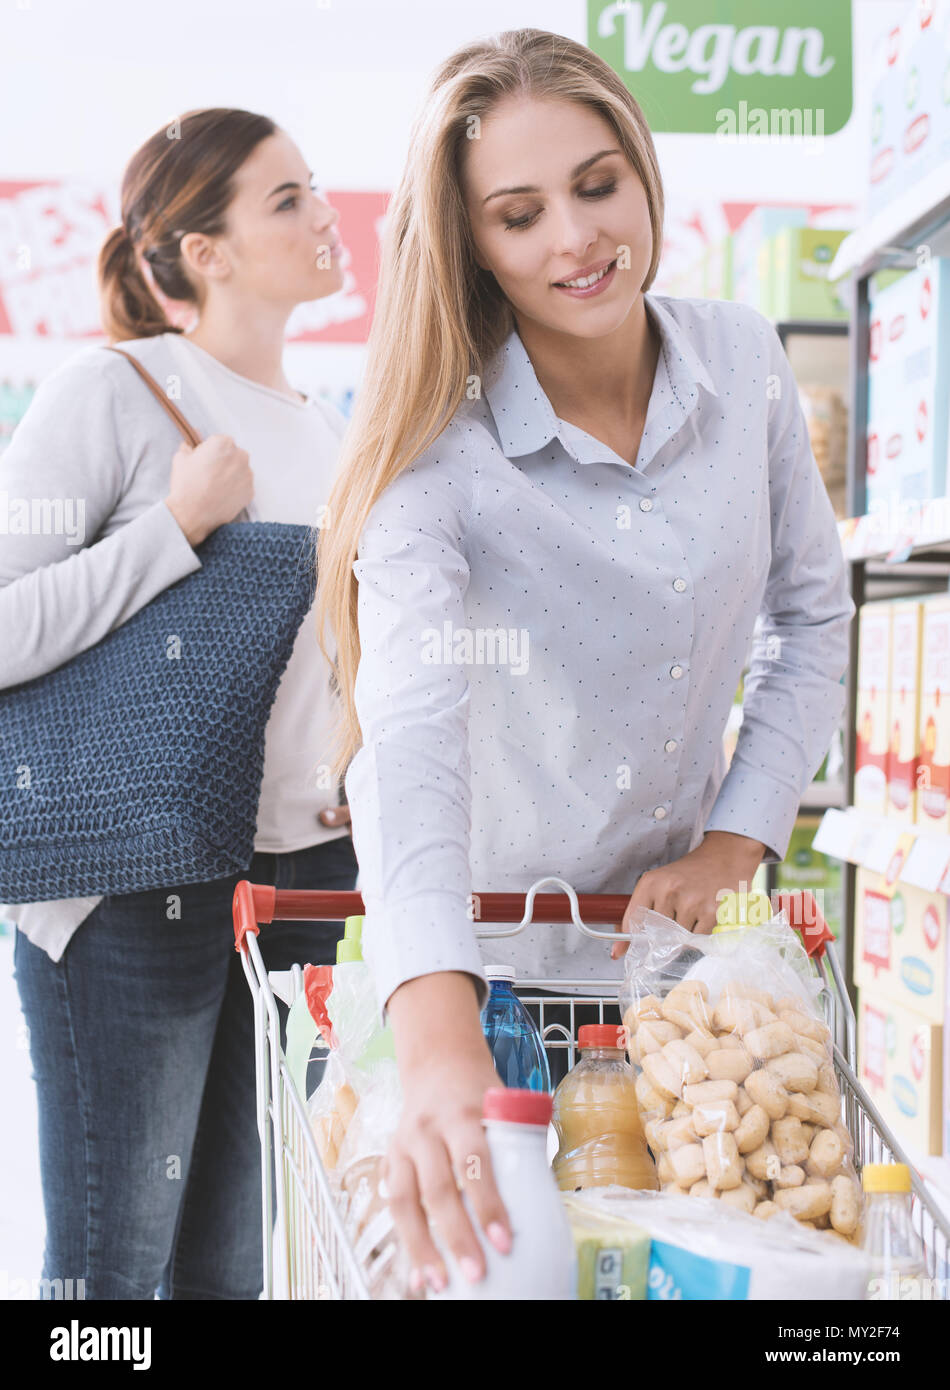 Friends shopping together at the hypermarket, one is putting products in the cart - Stock Image